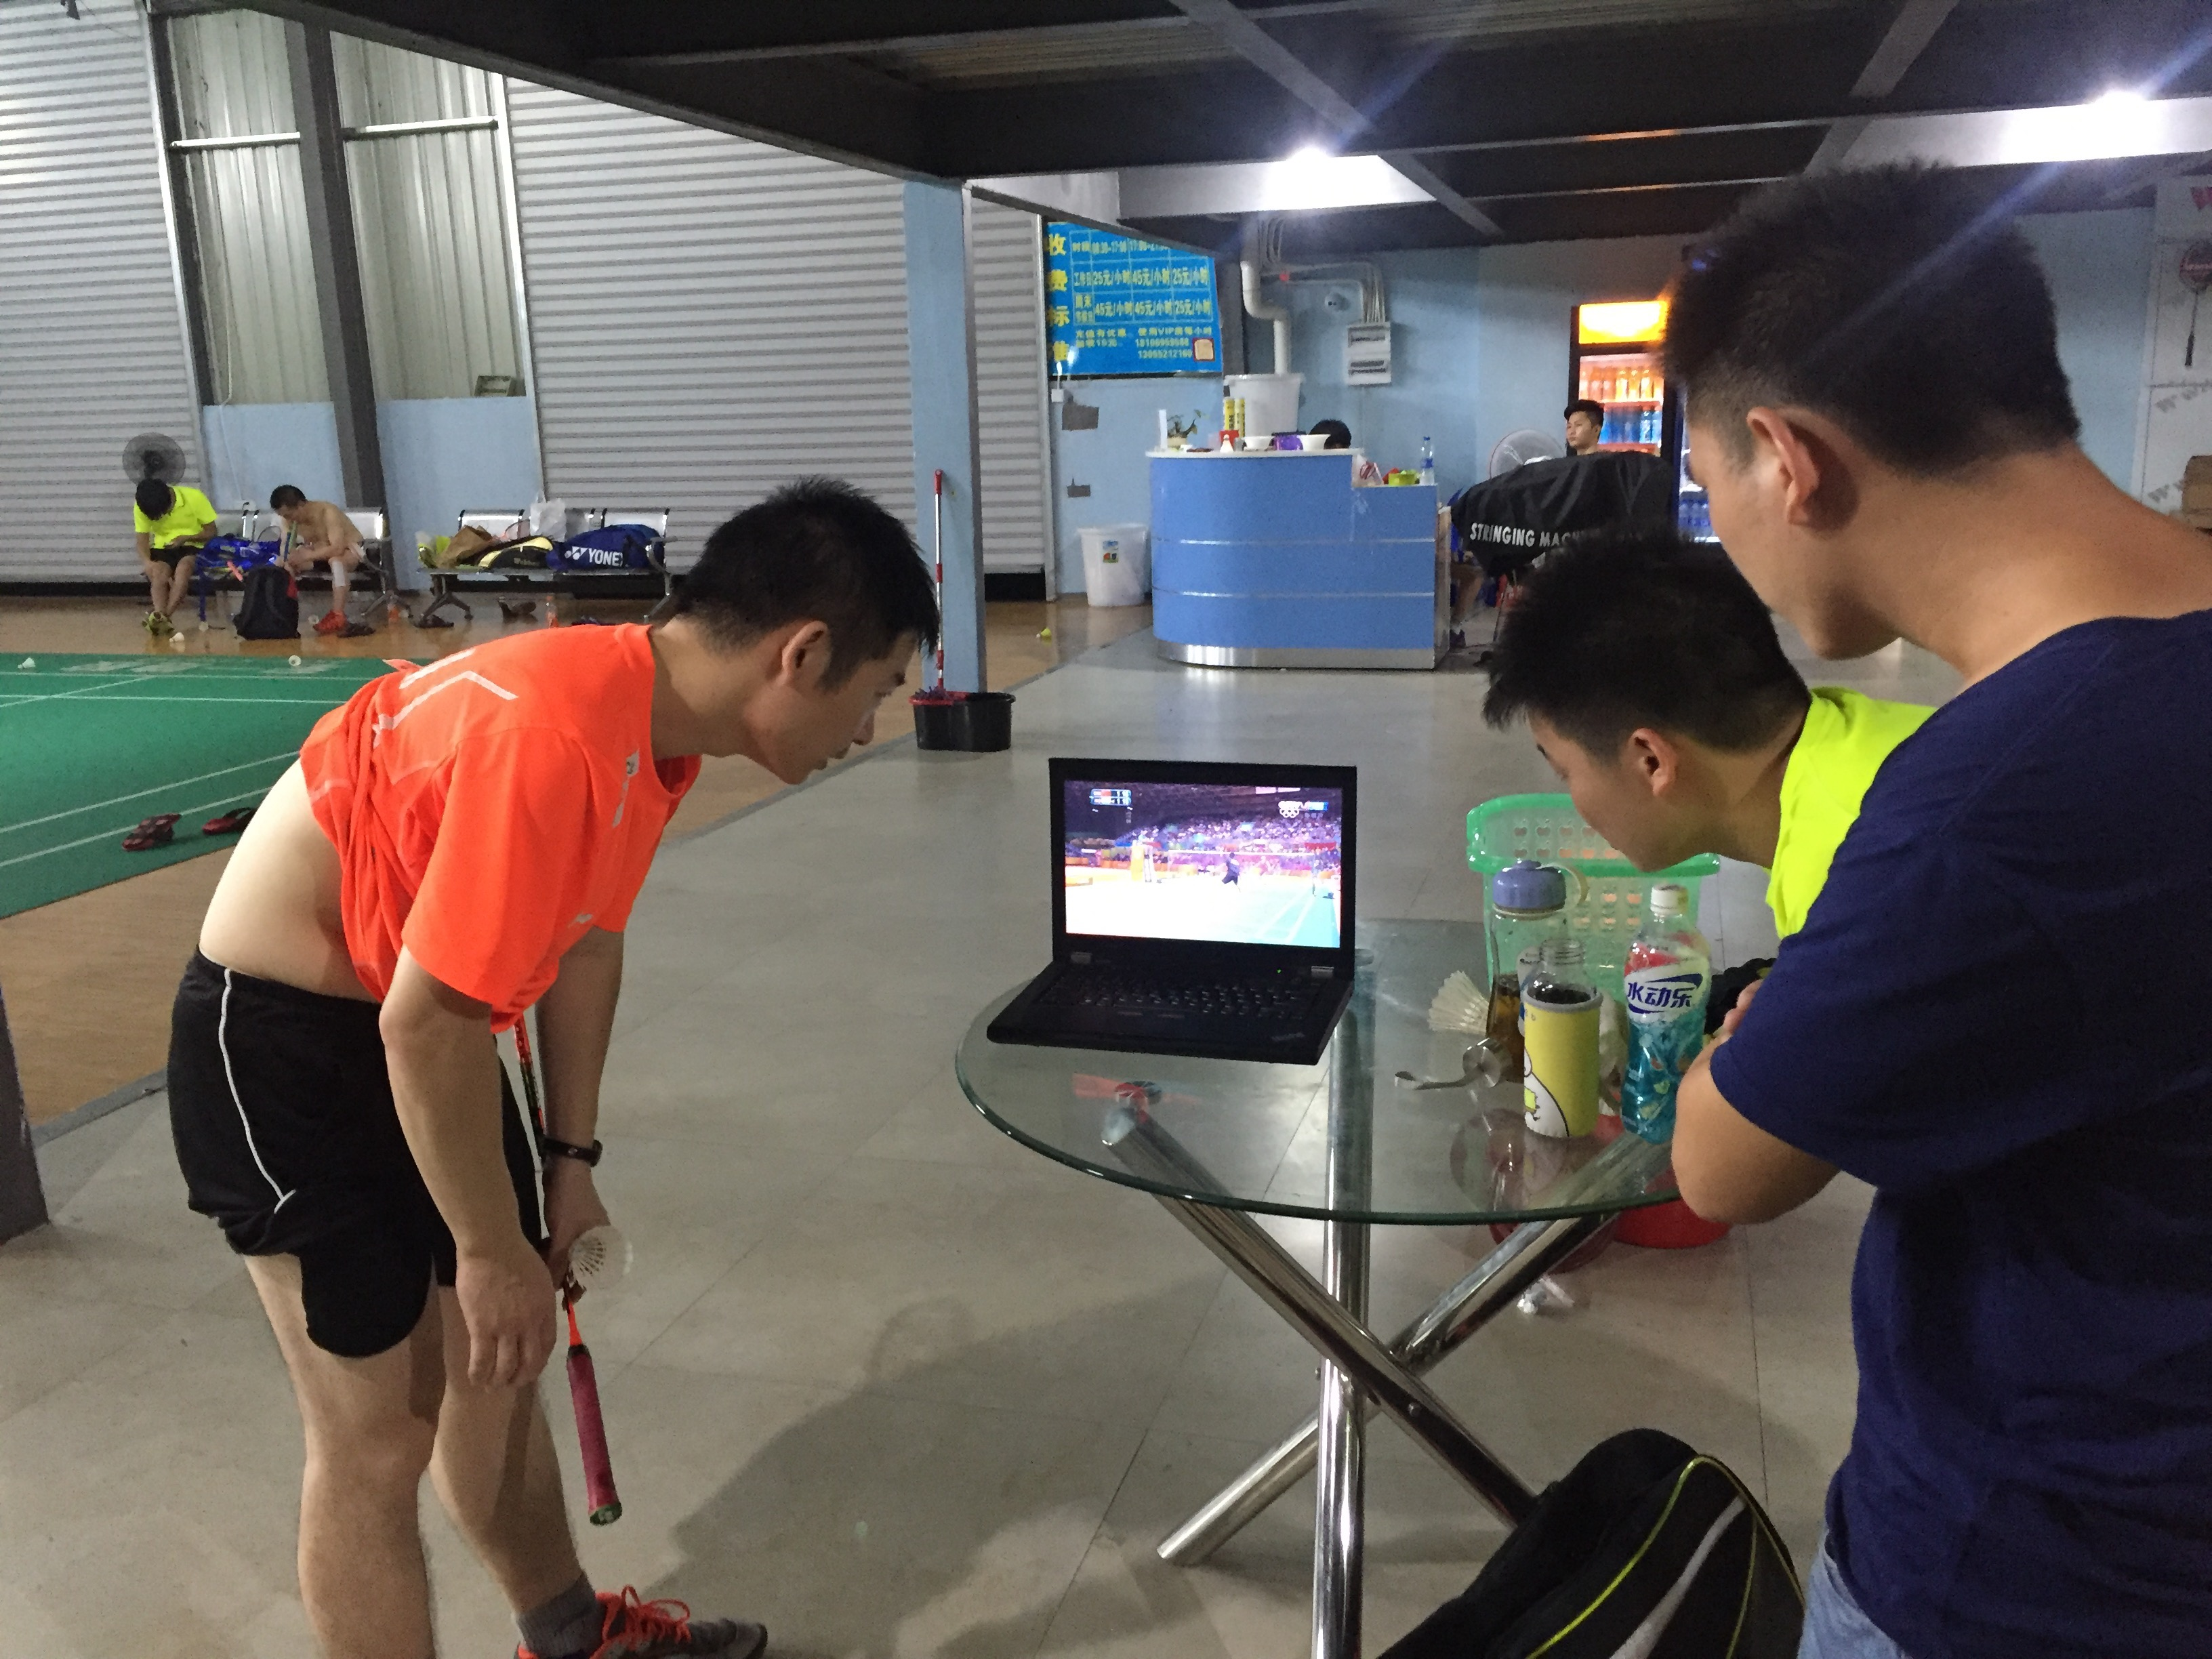 But last night, all game play stopped when Lin Dan (the two time Olympic medalist and most famous player in China) was close to losing the match against an Indian player. They had each won one game and Lin Dan was down a few points. My coach grabbed his computer and we all watched the last few points where Lin Dan pulled off a narrow victory much to everyones joy. As soon as that game finished we all headed back out to the courts to keep playing.